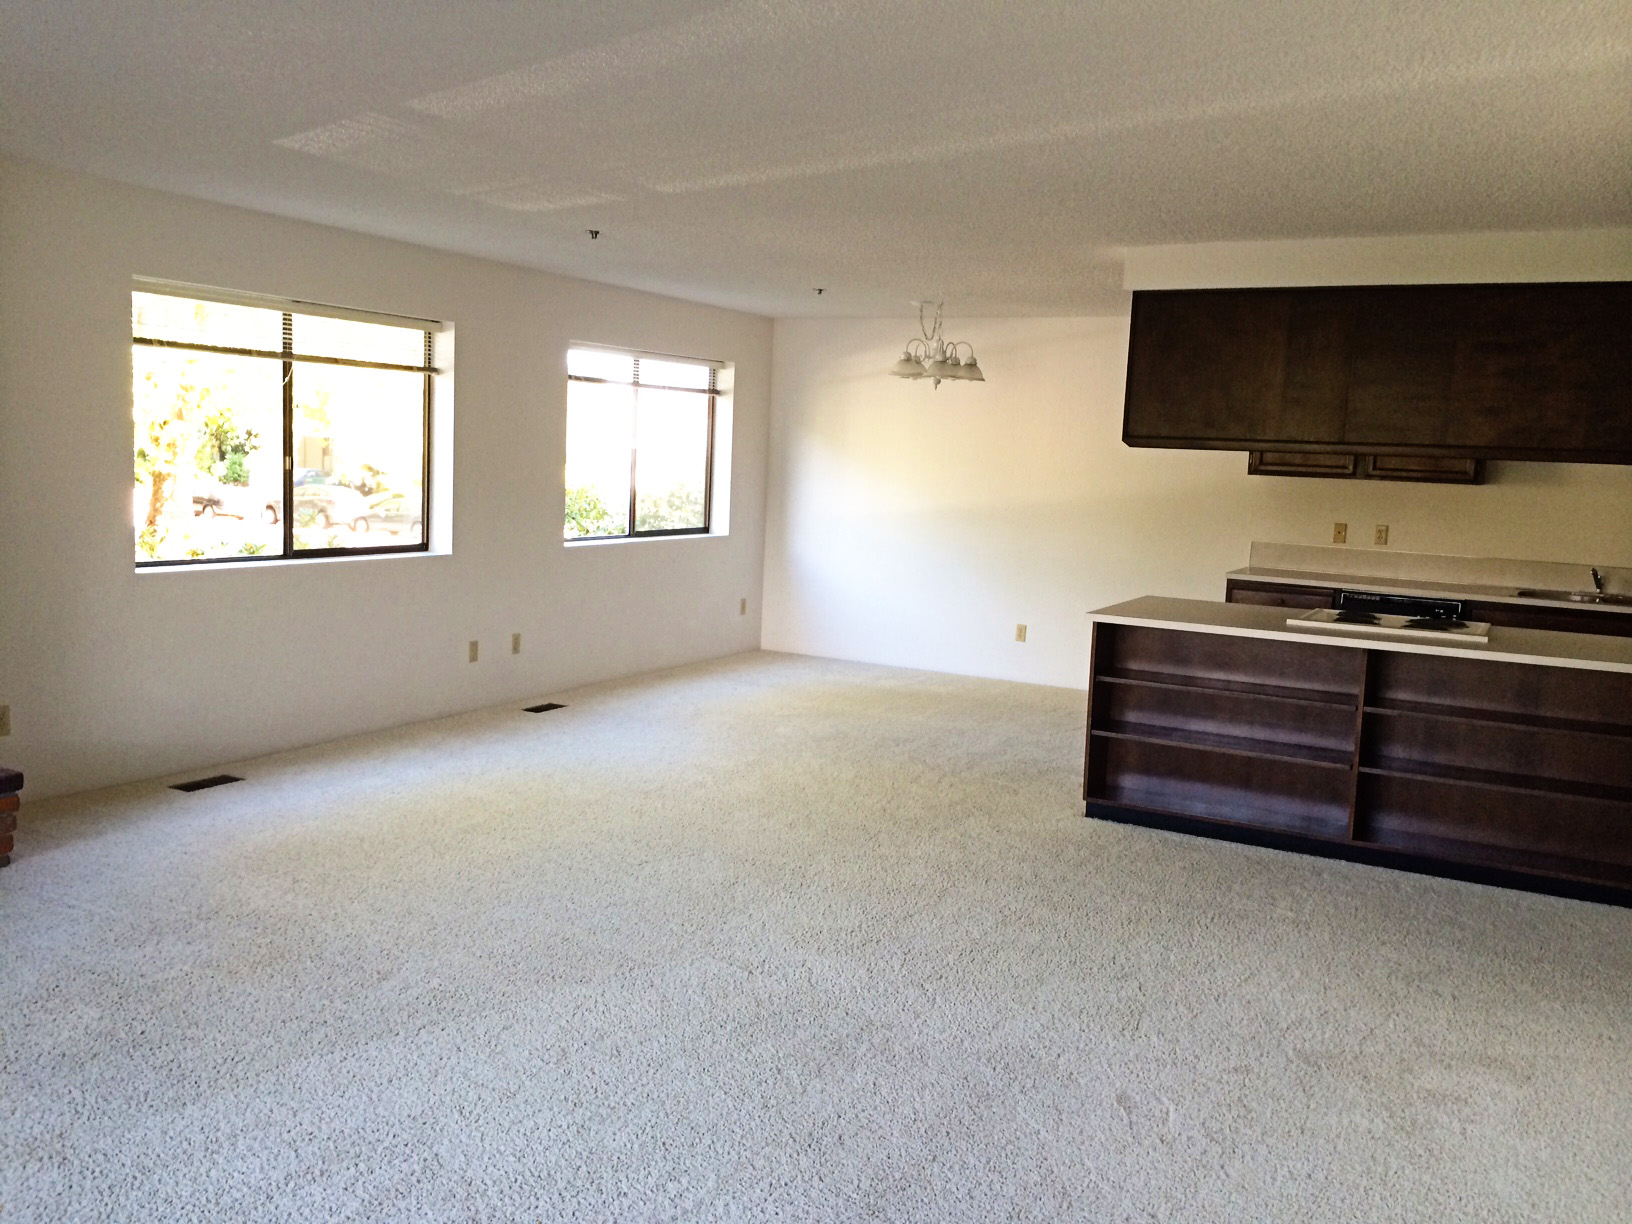 Living Room to Dining Room/Kitchen